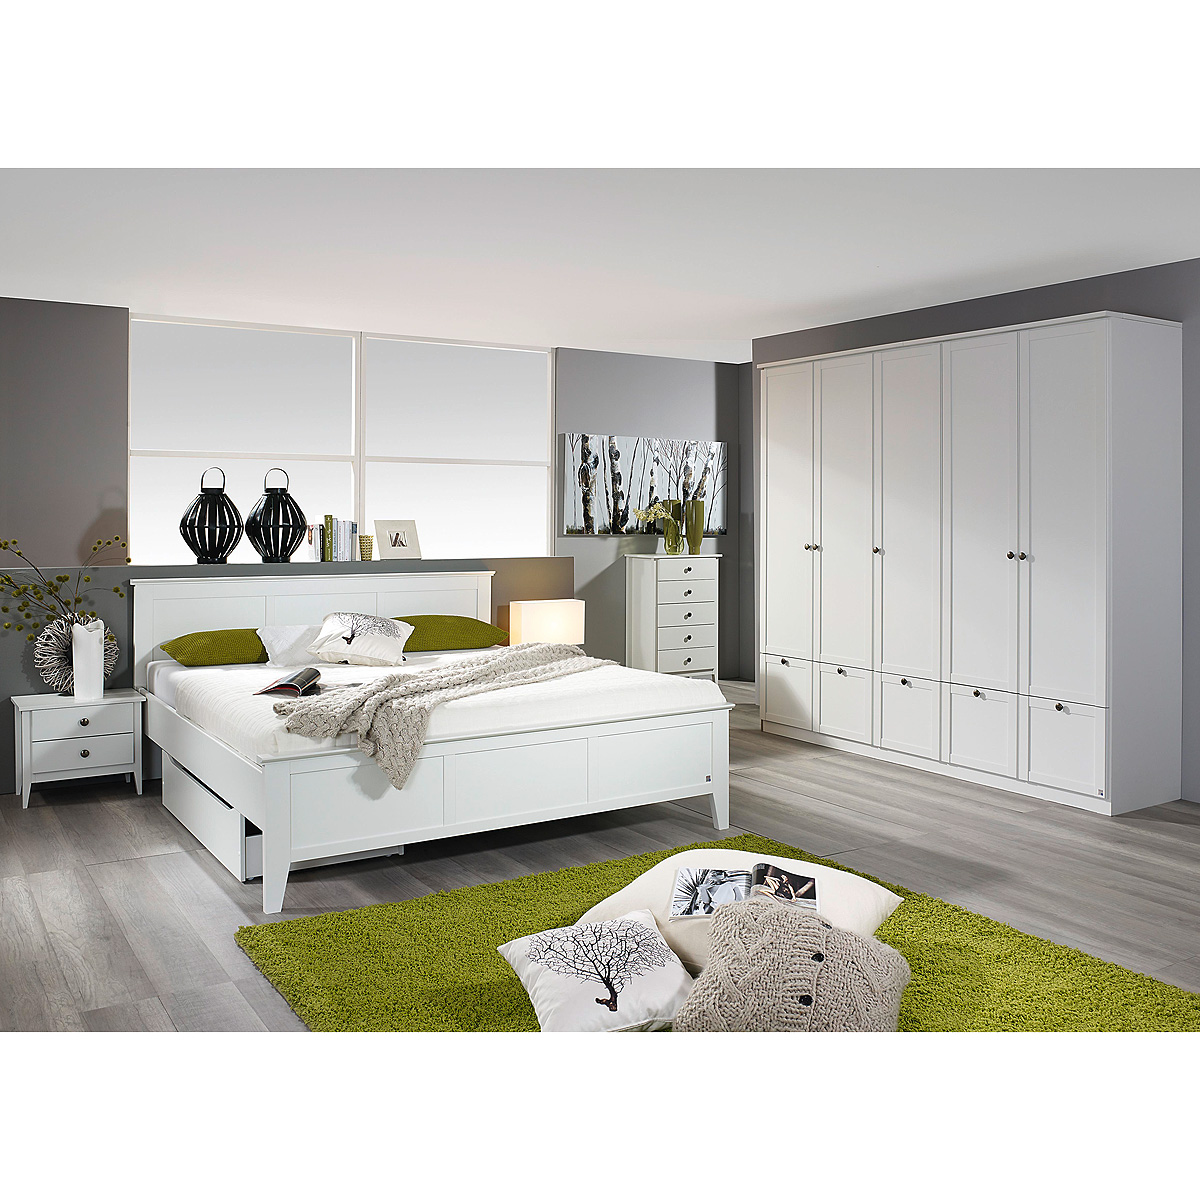 schlafzimmer rosenheim gera schlafzimmerset bett schrank nachttisch in wei ebay. Black Bedroom Furniture Sets. Home Design Ideas